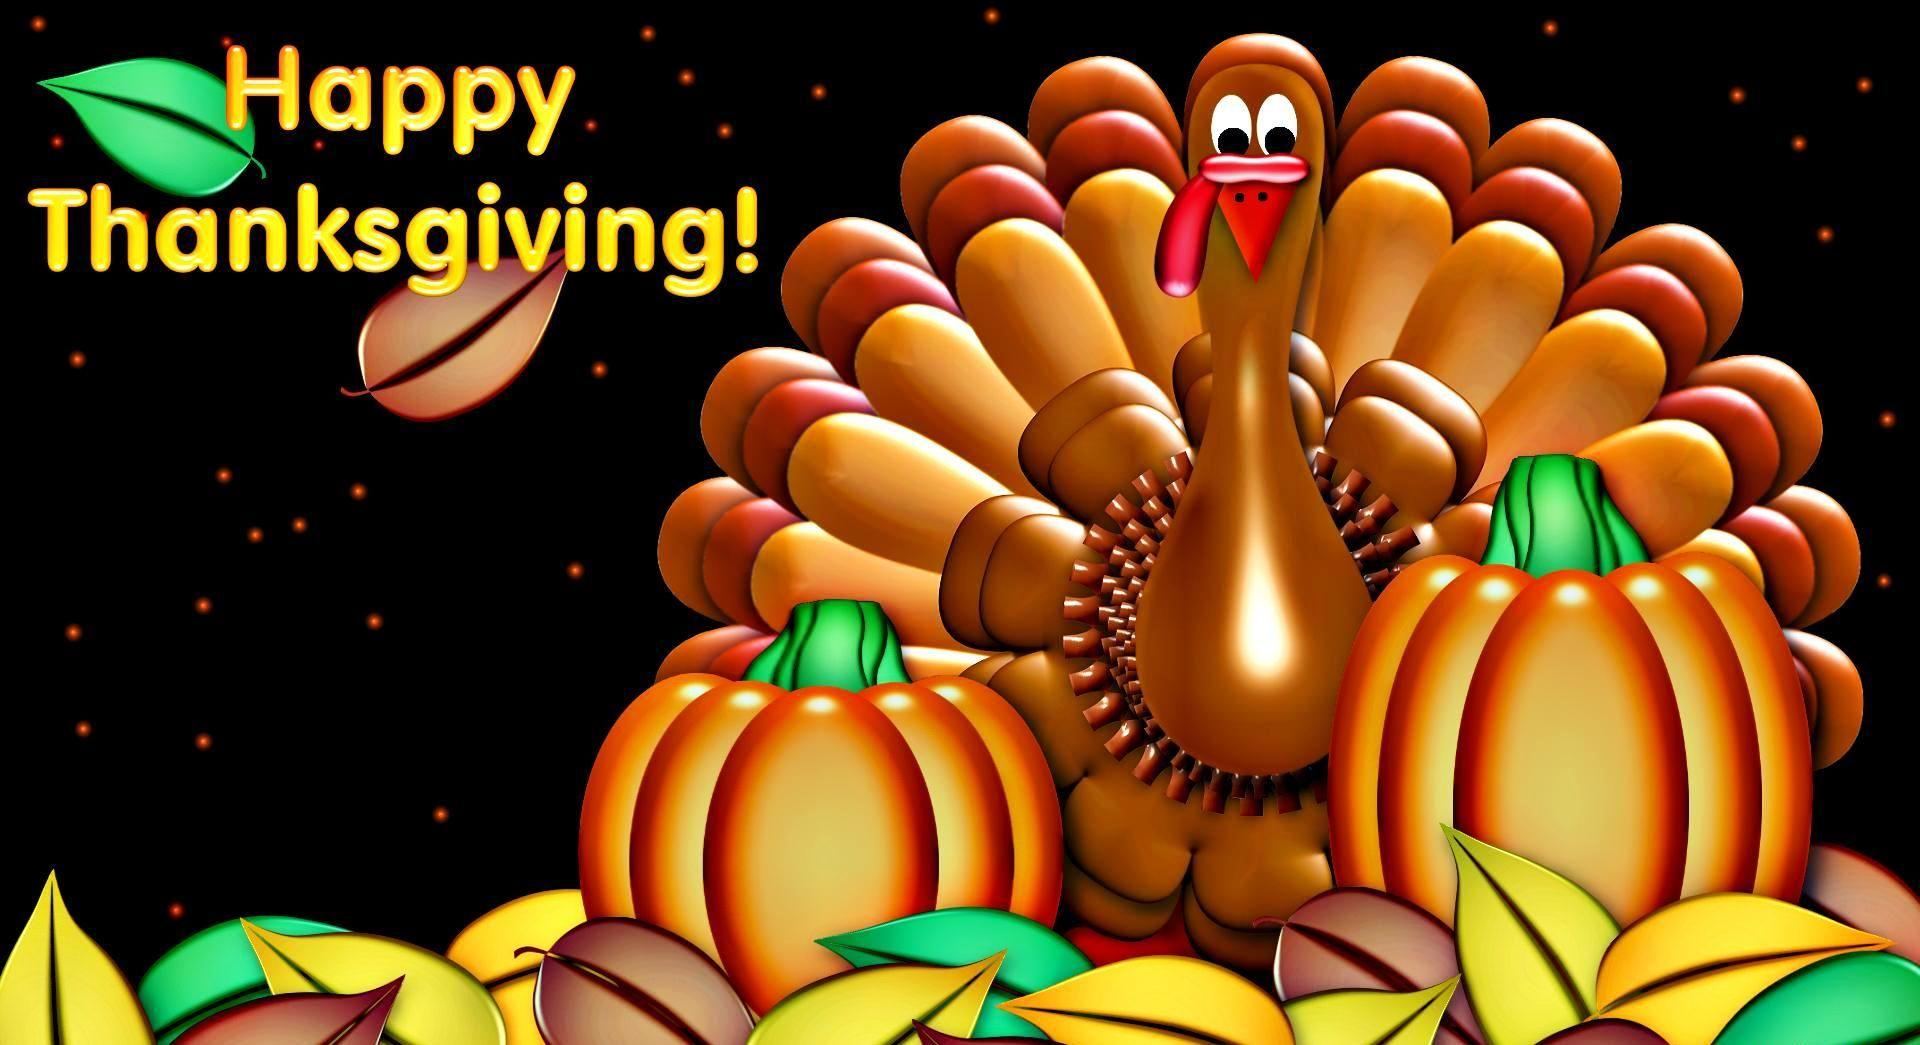 Happy Thanksgiving Wallpapers in 2020